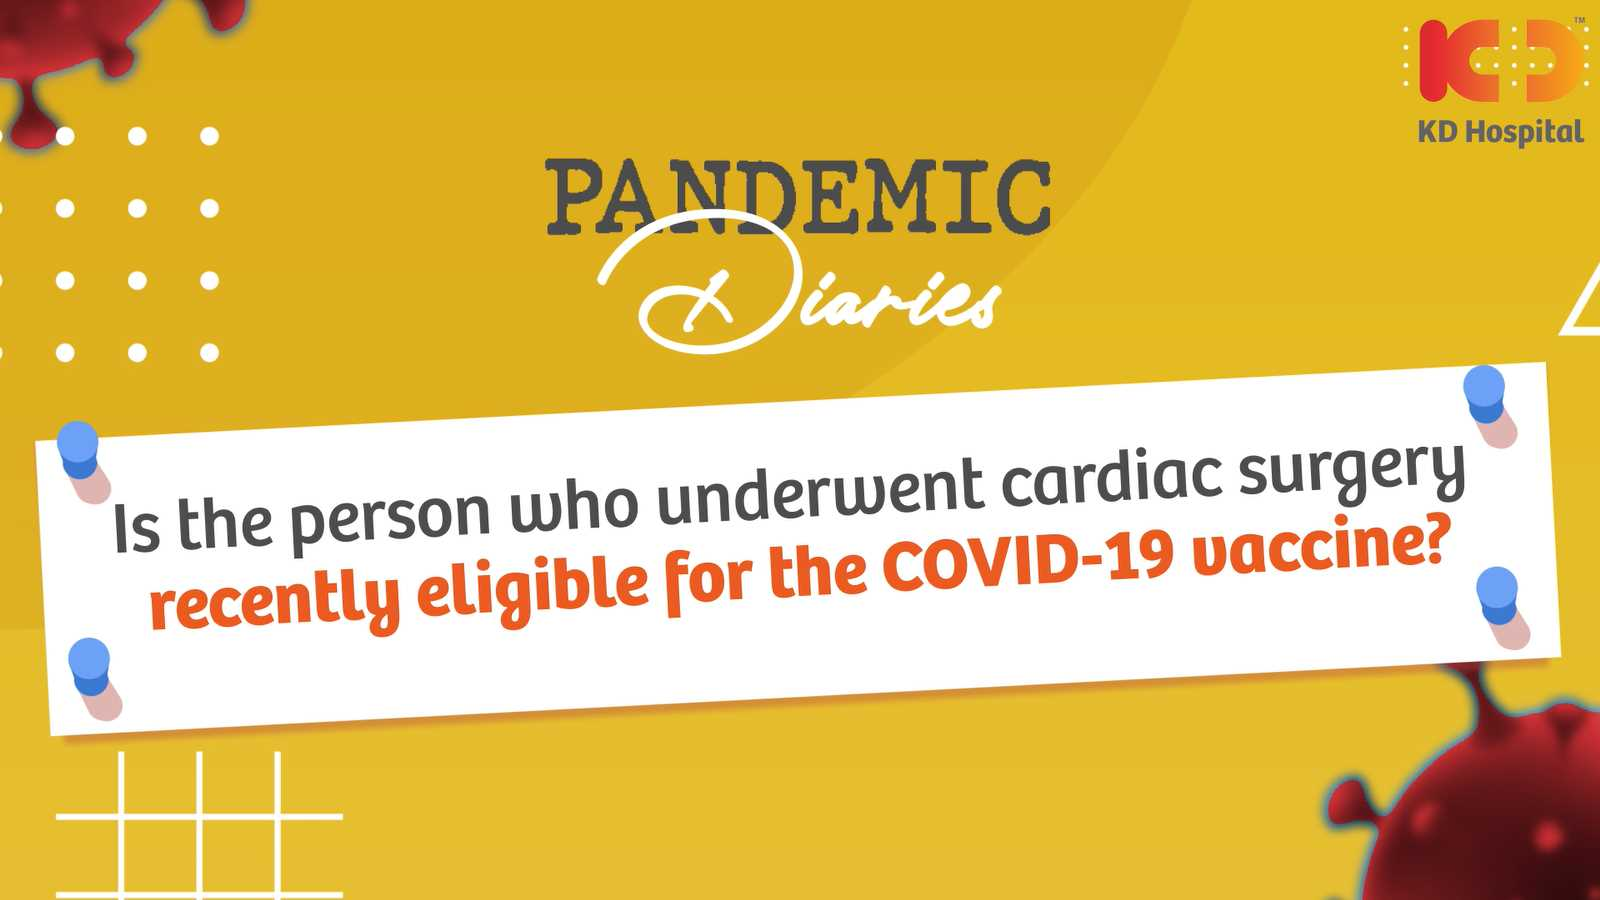 Keep your heart and health safe during the pandemic. Hear our consultant cardiologist Dr. Abhishek talk about cardiac diseases and COVID-19.  Watch the full episode of